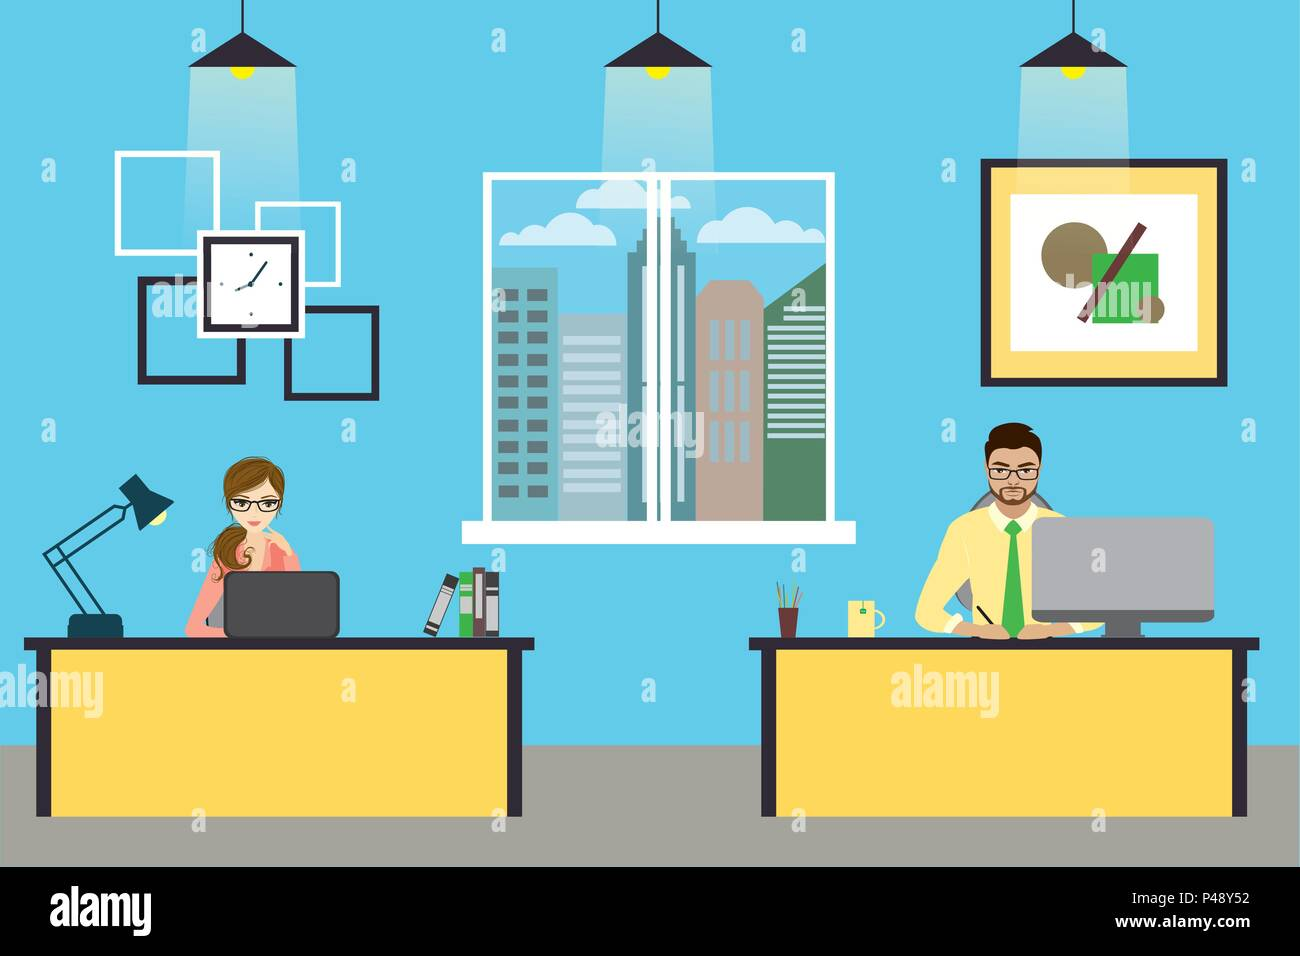 Cartoon Banner Of Two Office Workers The Young Woman And Man Is An Employees At Work Vector Flat Illustration Stock Vector Image Art Alamy